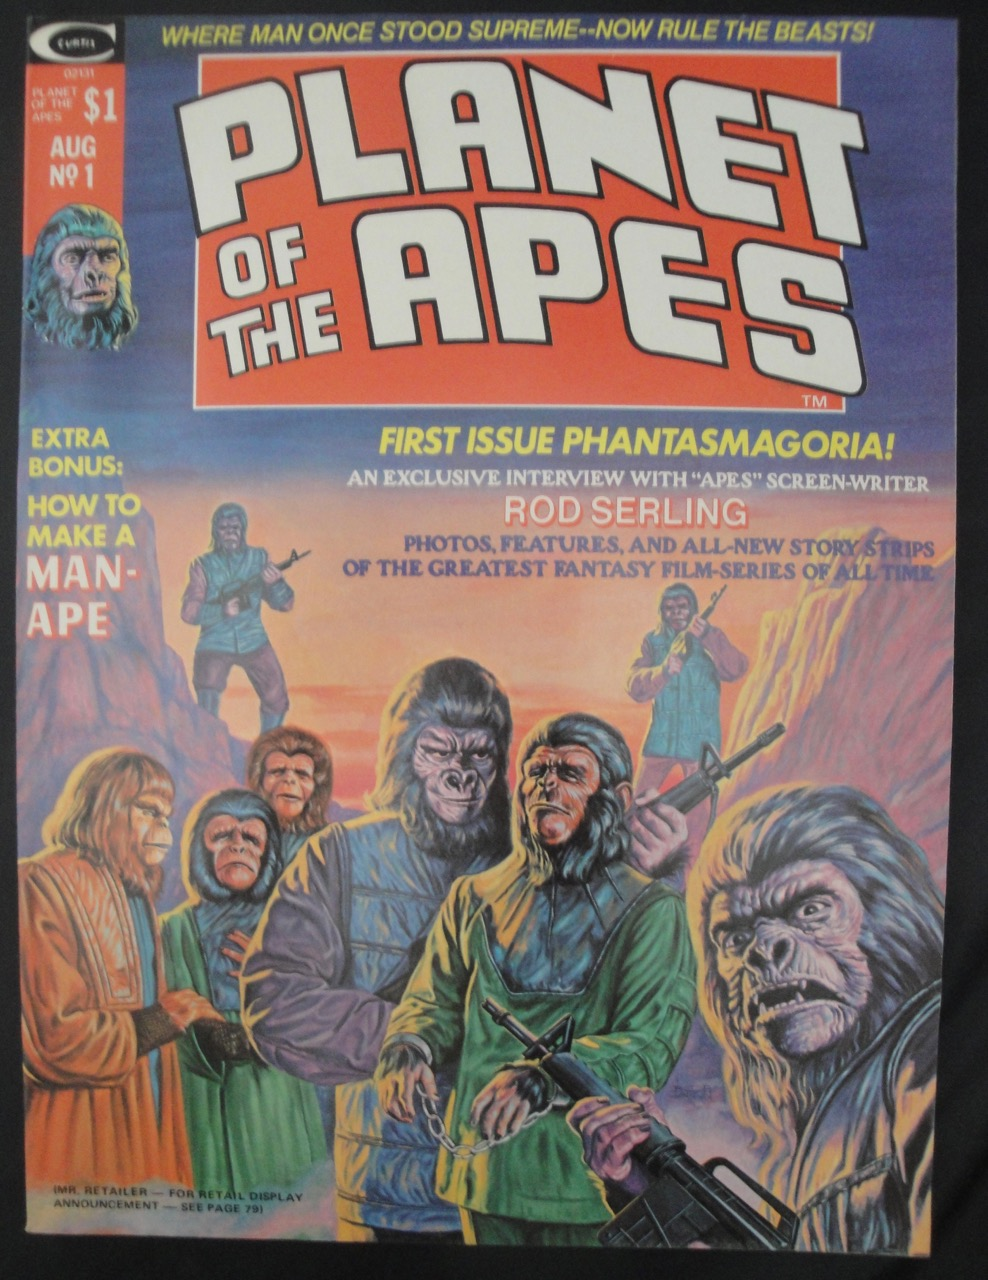 Planet Of The Apes #1 - 1974 - VF+ condition, Rod Serling